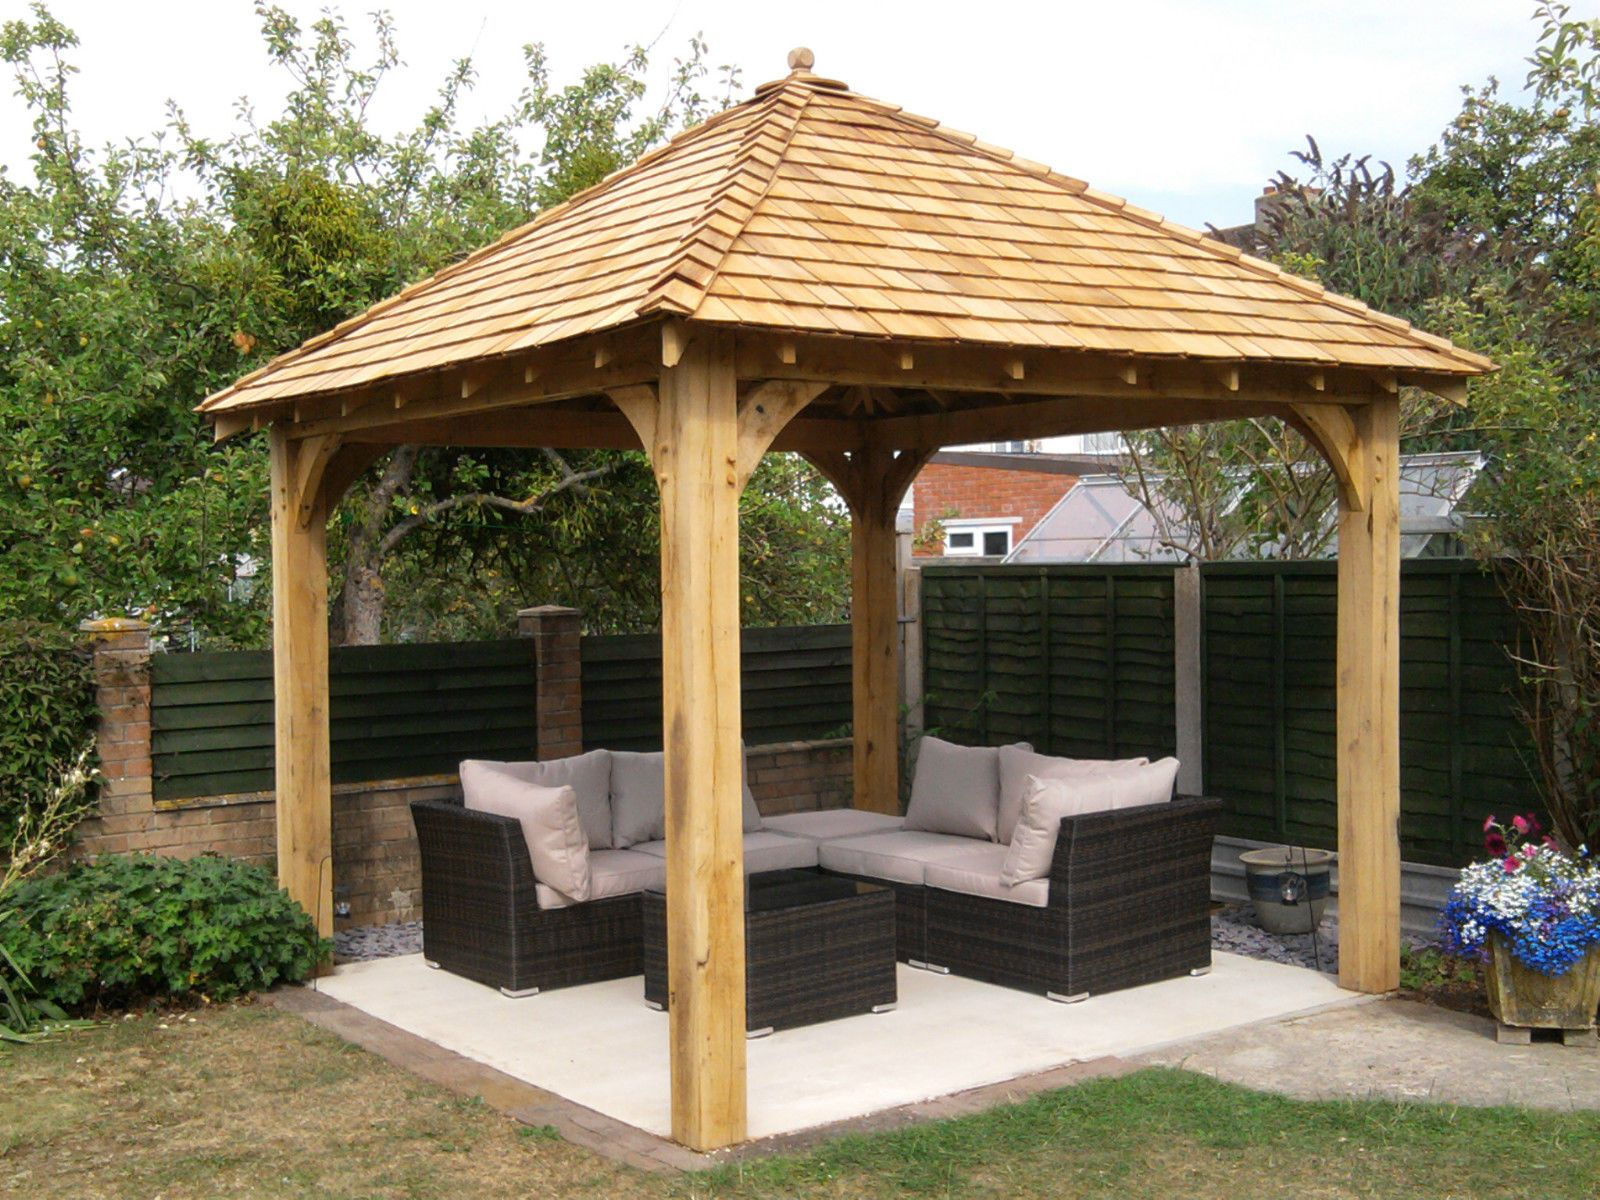 Oak Gazebo 3mx3m Including Cedar Shingles Diy Kit Ebay